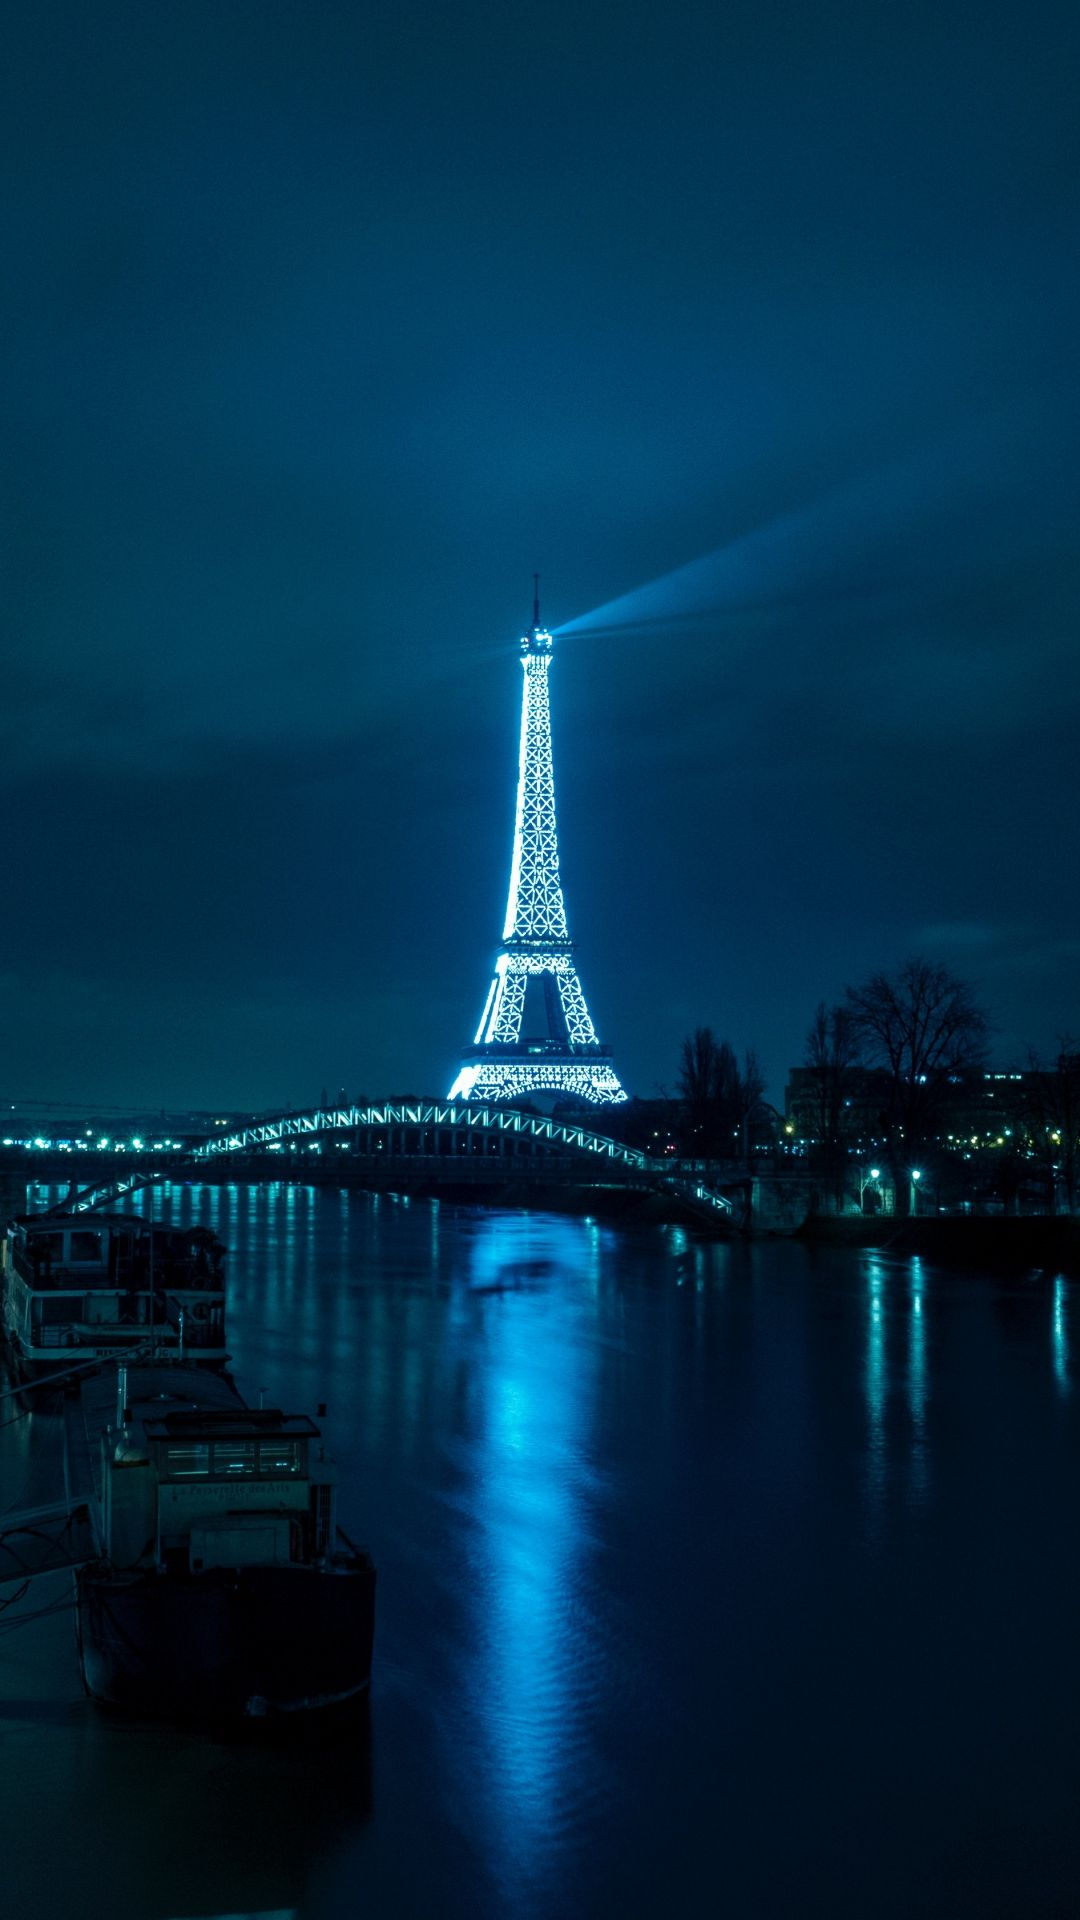 Paris Eiffel Tower Night City River Bridge Iphone 8 Wallpapers City Wallpaper Eiffel Tower Lights Eiffel Tower